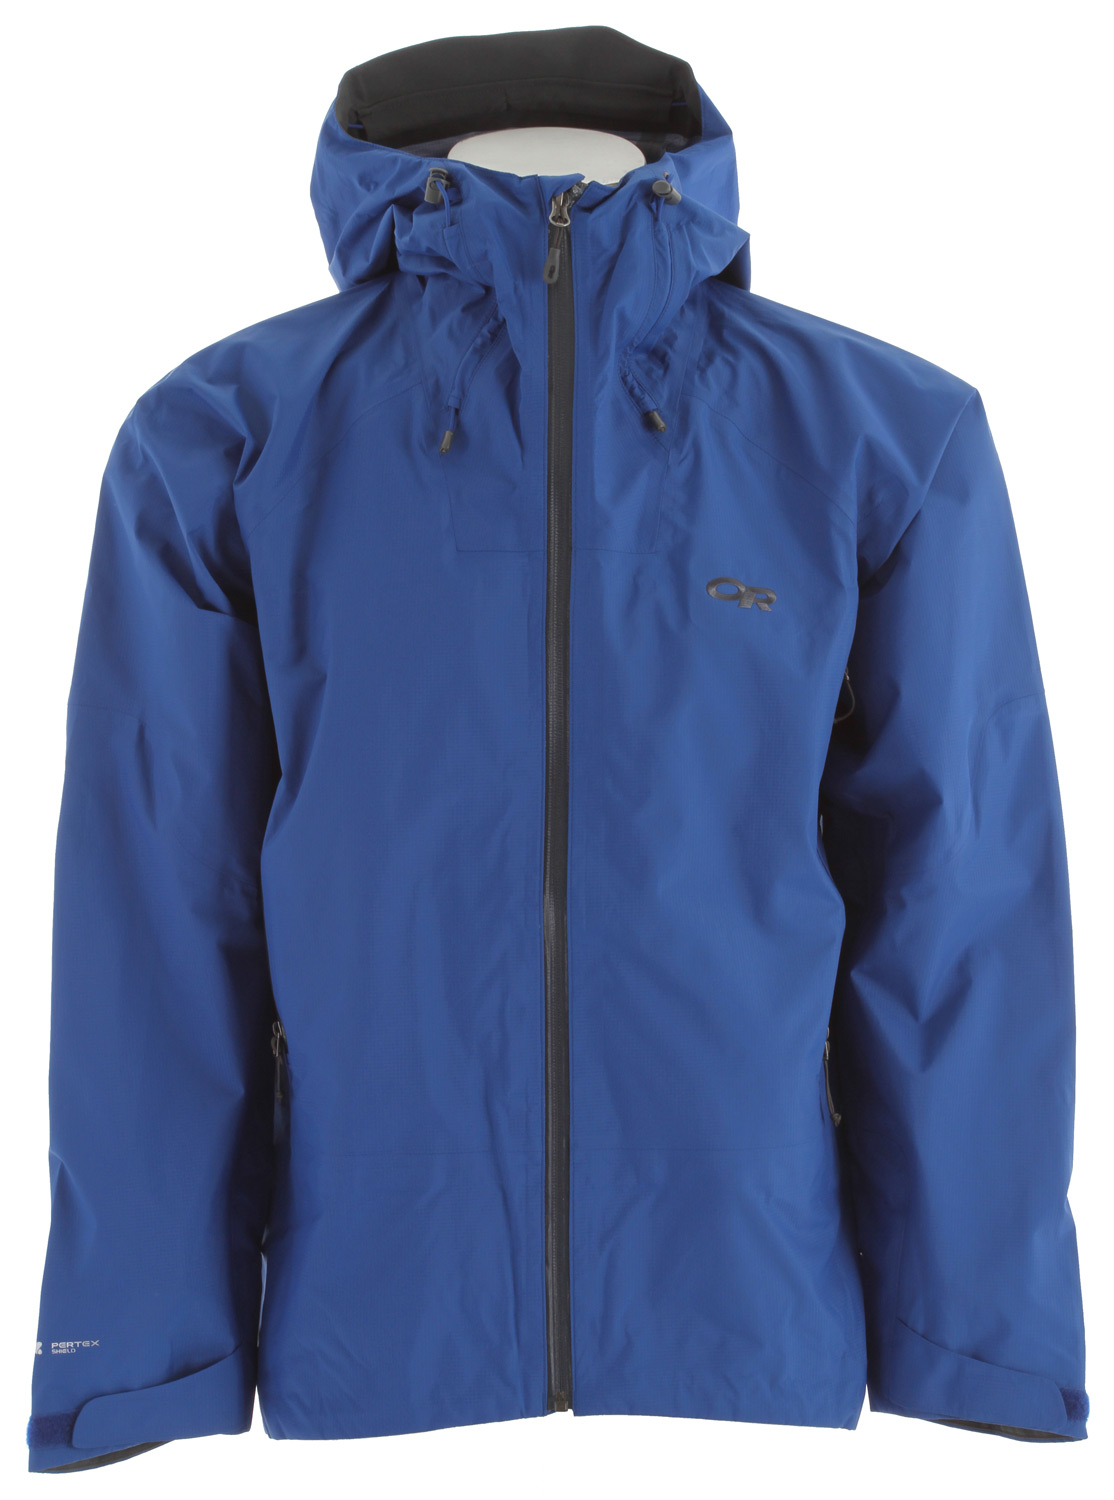 Combining features for rugged alpine conditions with ultralight fabric, this three-season, three-layer shell is built for when saving weight and durability are equally important. The misty pre-dawn sky hints at the coming bluebird day as packs are shouldered, headlamps are switched on, and quick steps put more distance between you and the trailhead, For burly spring climbs, there is no better outer layer than the Paladin, Ultralight fabric is durably constructed for the most rugged conditions, and the no-frills design offers high performance without weighty excess. Features include a helmet compatible hood, harness- and pack-compatible pockets, easily adjustable ventilation, and construction that keeps the jacket in place when constantly reaching above your head for the next hold.* Ultralight, waterproof/breathable, 3-layer 30D Pertex Shield fabric * Fully seam taped * Water-resistant zippers * Fully adjustable hood fits over helmet * Hood tunnels keep cord ends away from face * Front zipper with internal storm flap * Two zippered, brushed-mesh hand pockets, double-sliding zippers allow venting * Zippered internal pocket with media port * Articulated elbows * Hook/loop cuff closures * Dual-drawcord hem adjustments * Fabric: 100% Nylon - $124.95